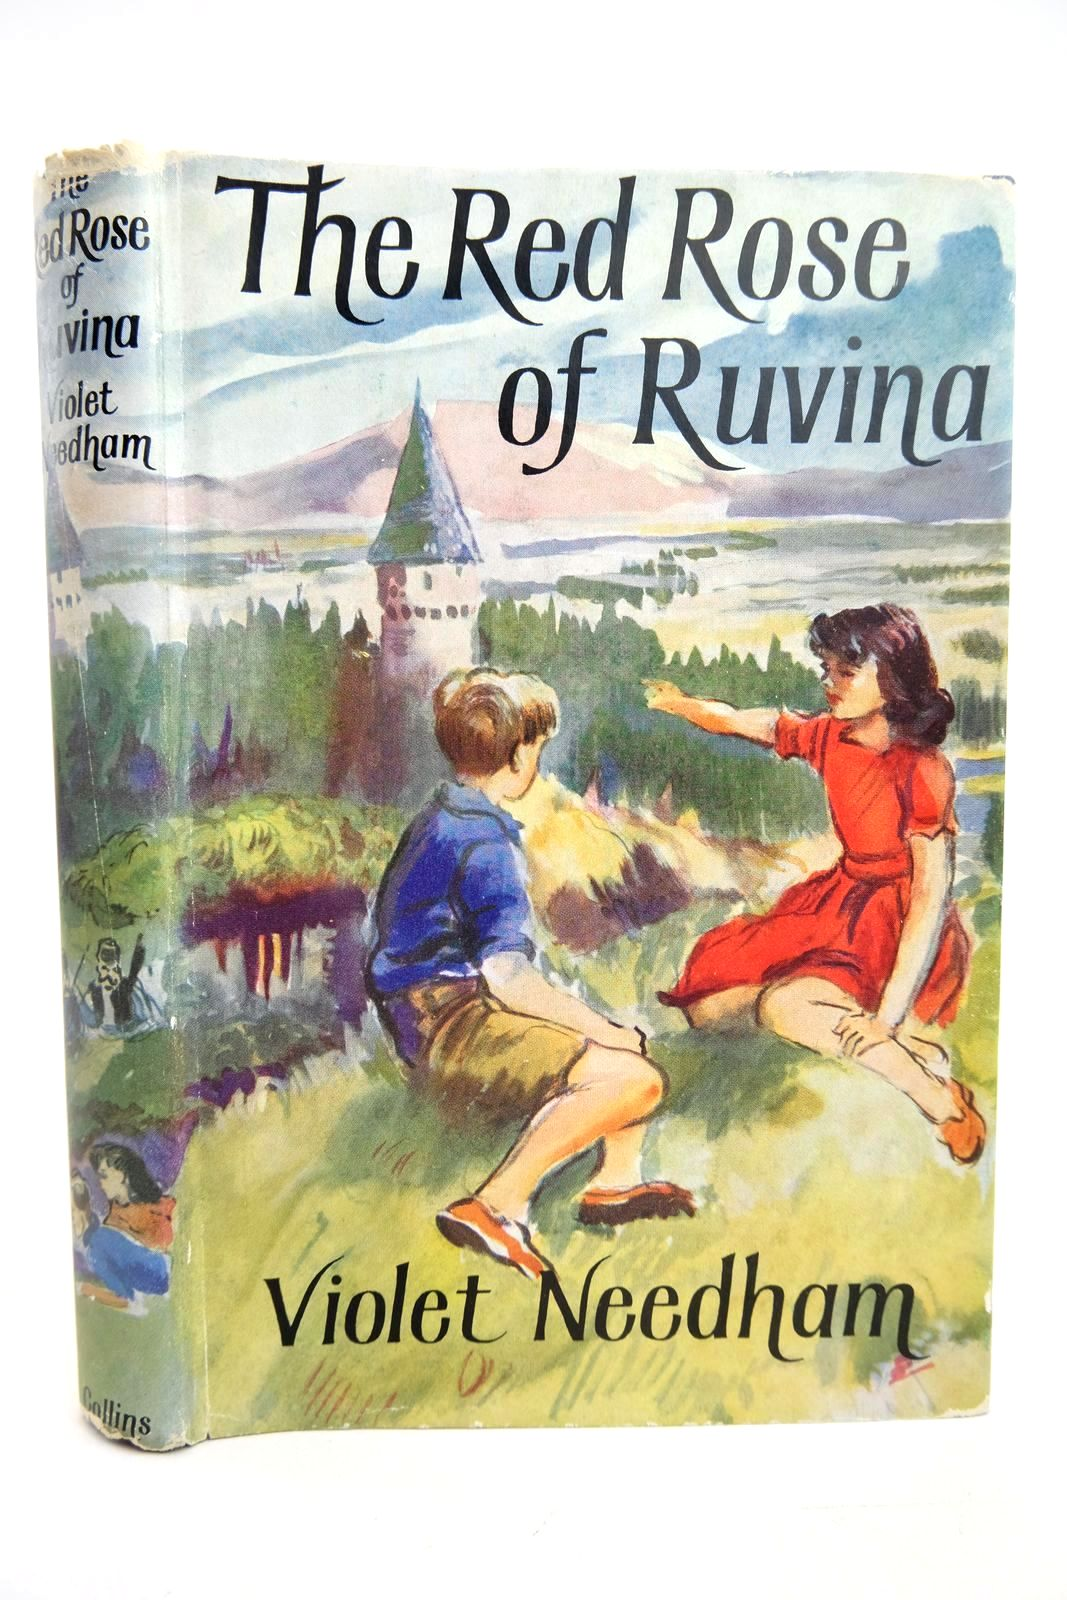 Photo of THE RED ROSE OF RUVINA written by Needham, Violet illustrated by Kennedy, Richard published by Collins (STOCK CODE: 1318778)  for sale by Stella & Rose's Books